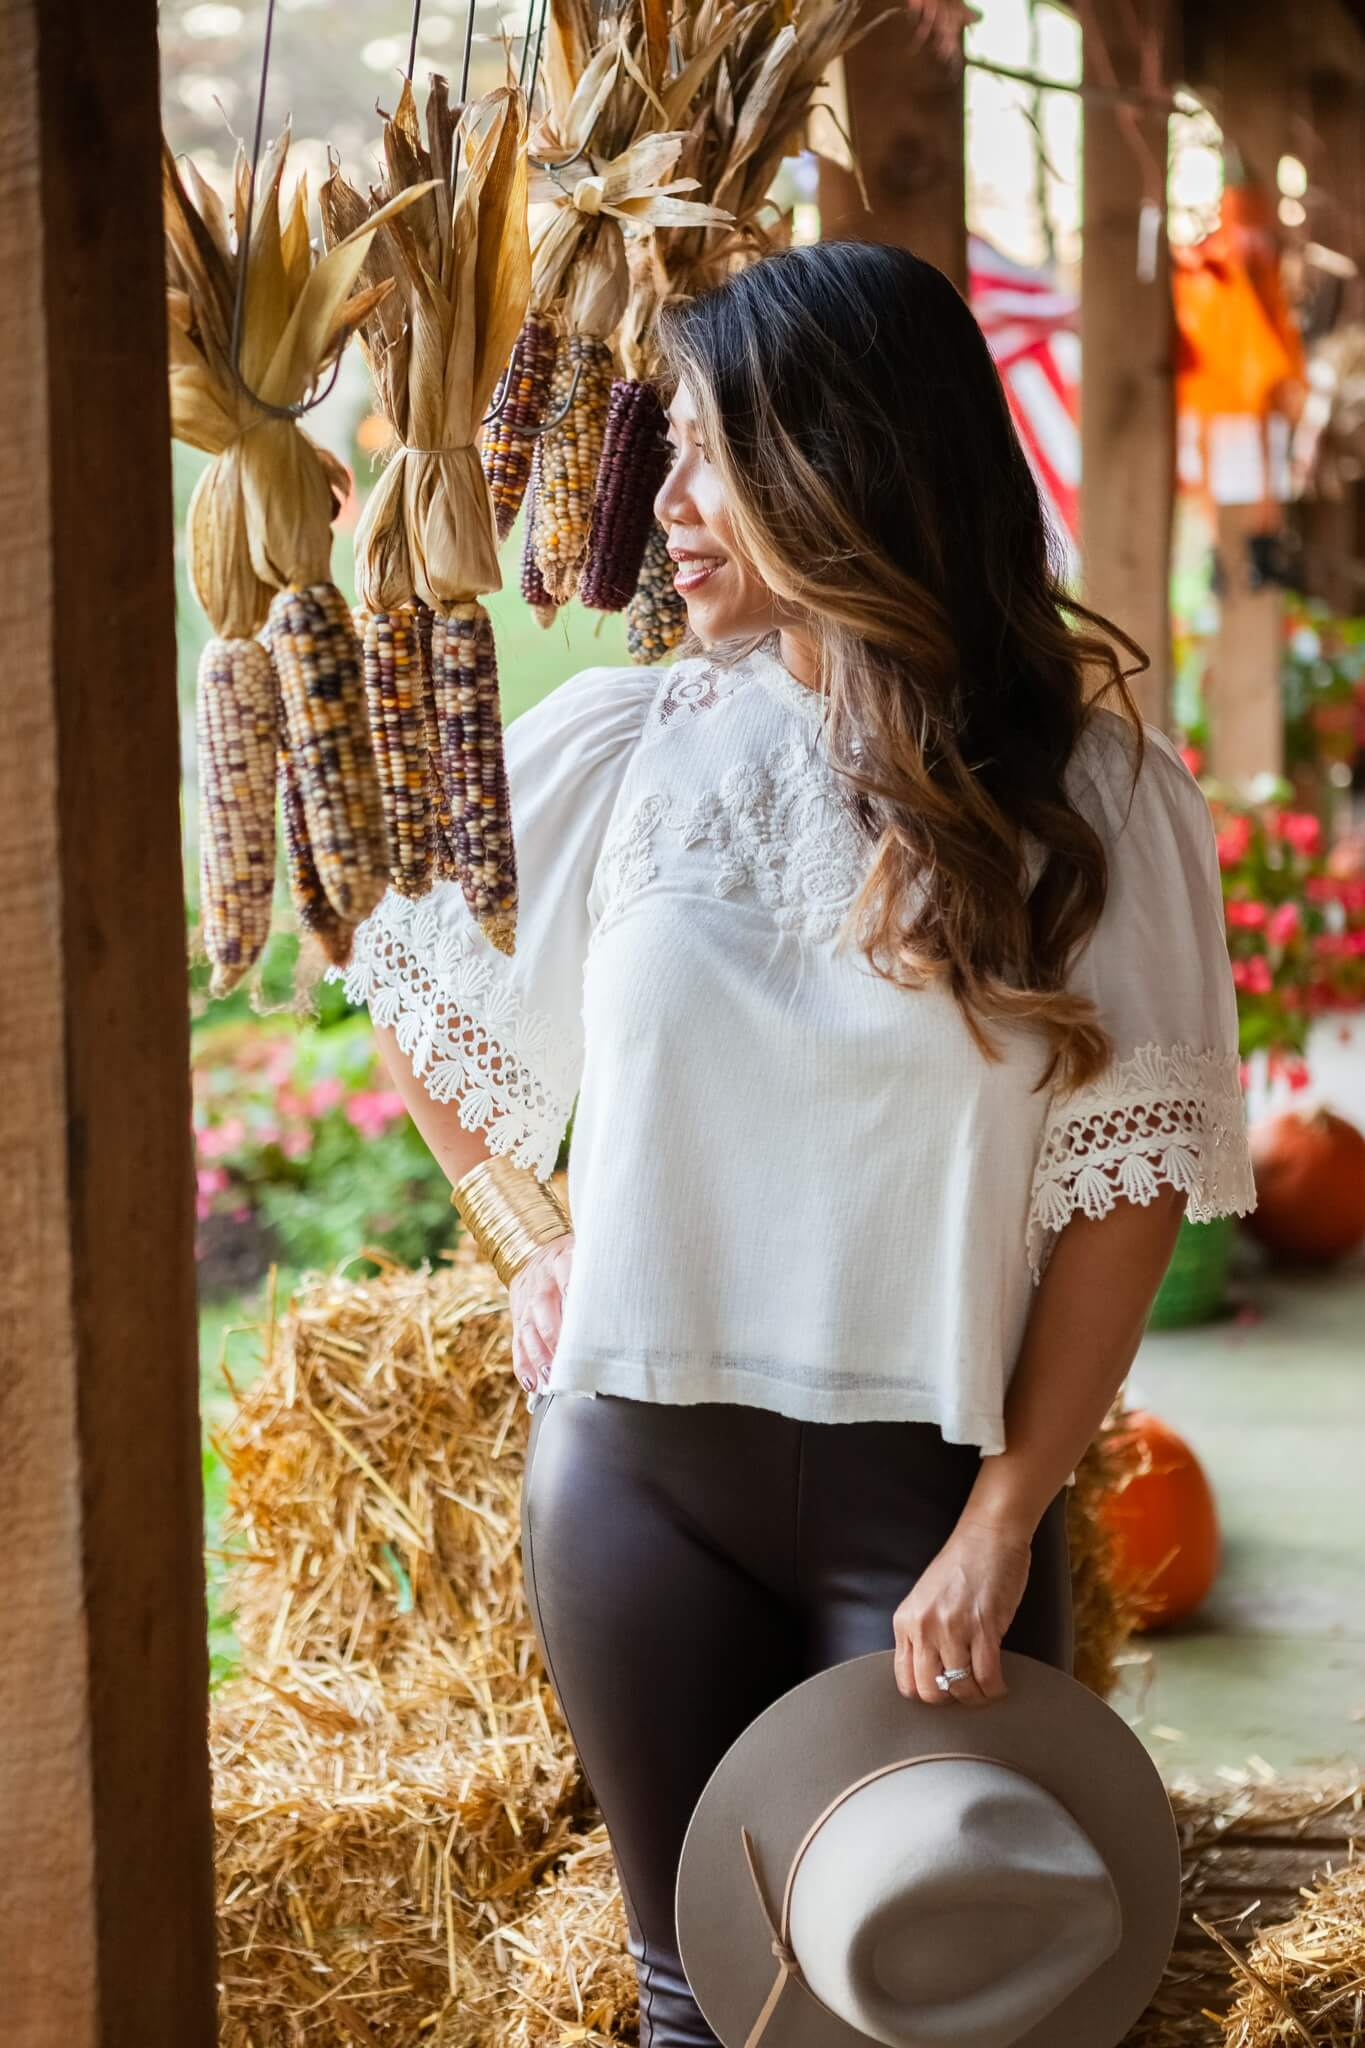 what to wear for fall, fall styles, fall outfit, fall outfit inspiration, fall trends, fall lookbook, fall fashion outfits, fall lookbook favorites, fall wardrobe essentials